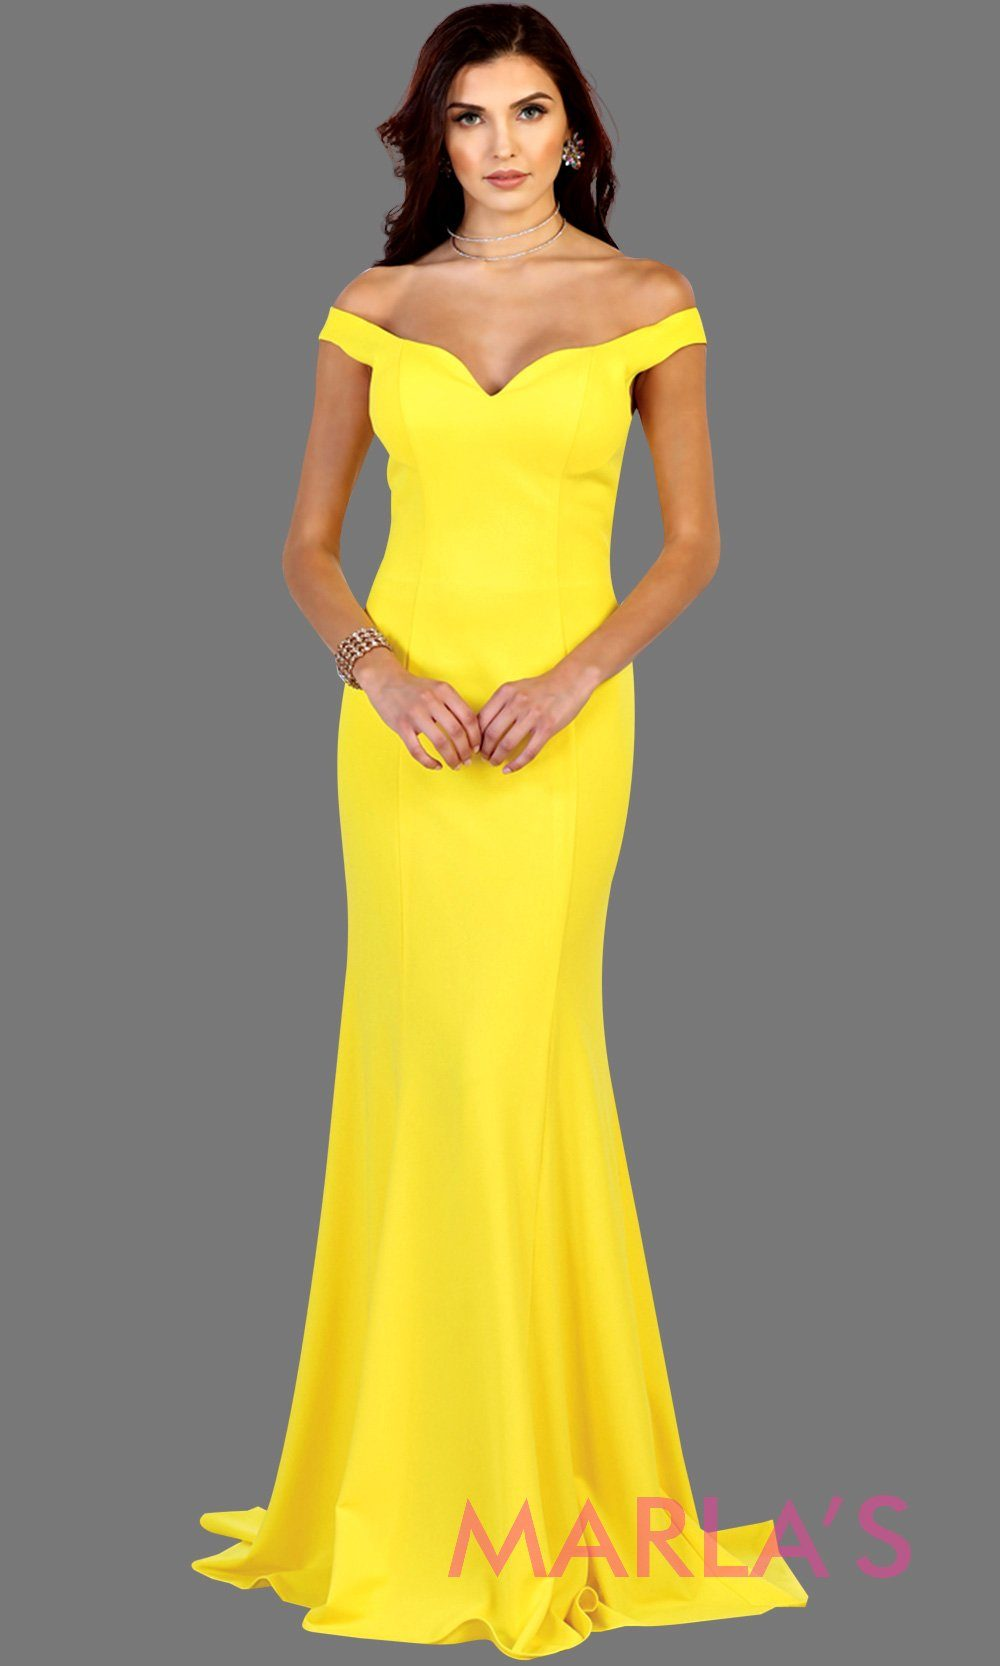 Long fitted yellow mermaid dress with low v back and low front. Perfect for prom, fitted evening gown, gala, formal yellow wedding guest dress, western party dress, full length formal dress. Available in plus sizes.